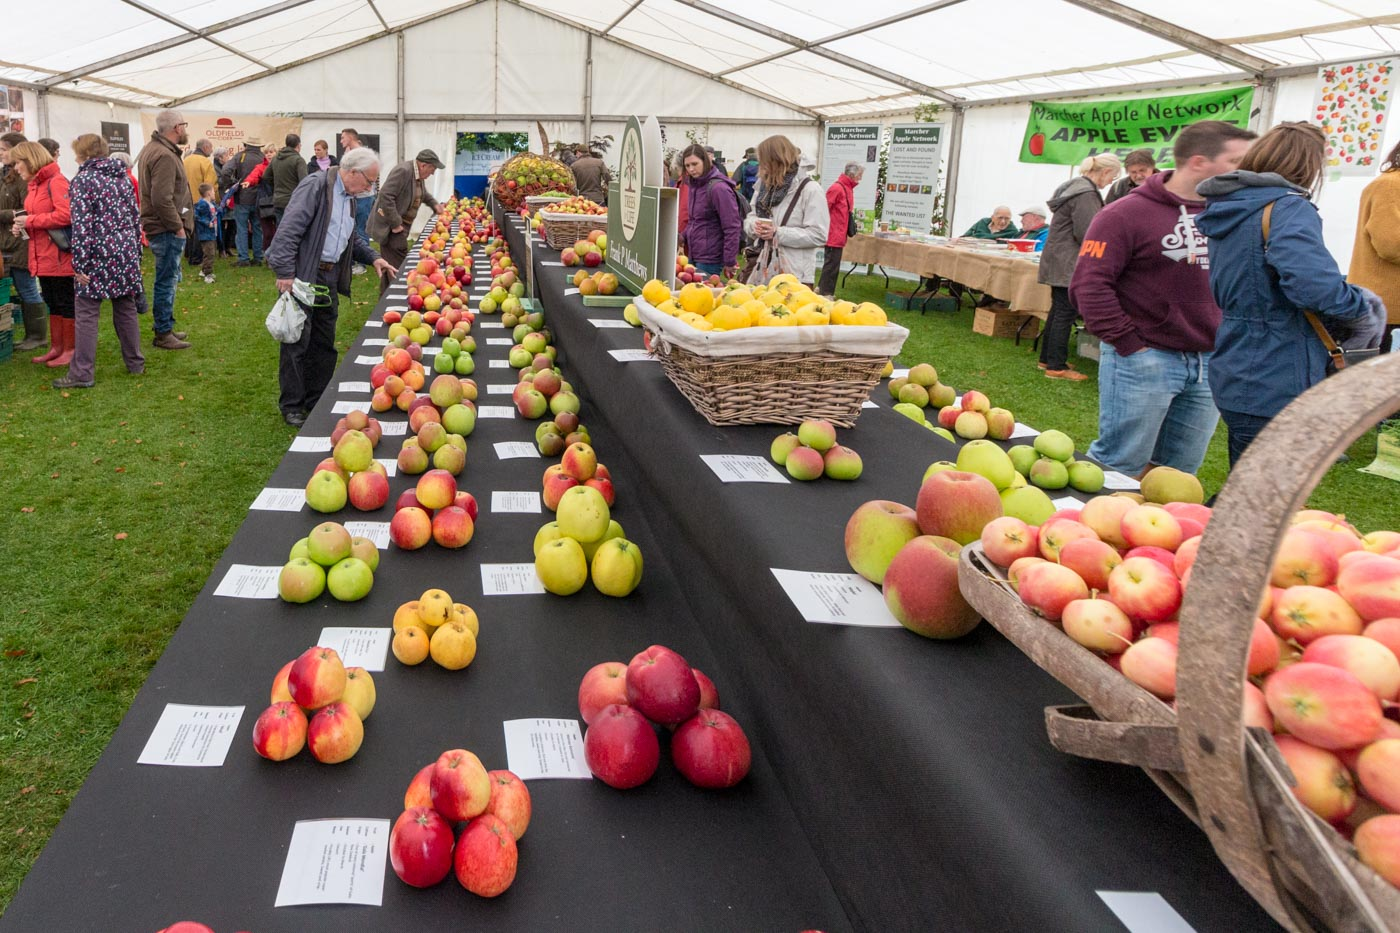 Tenbury Applefest 2019